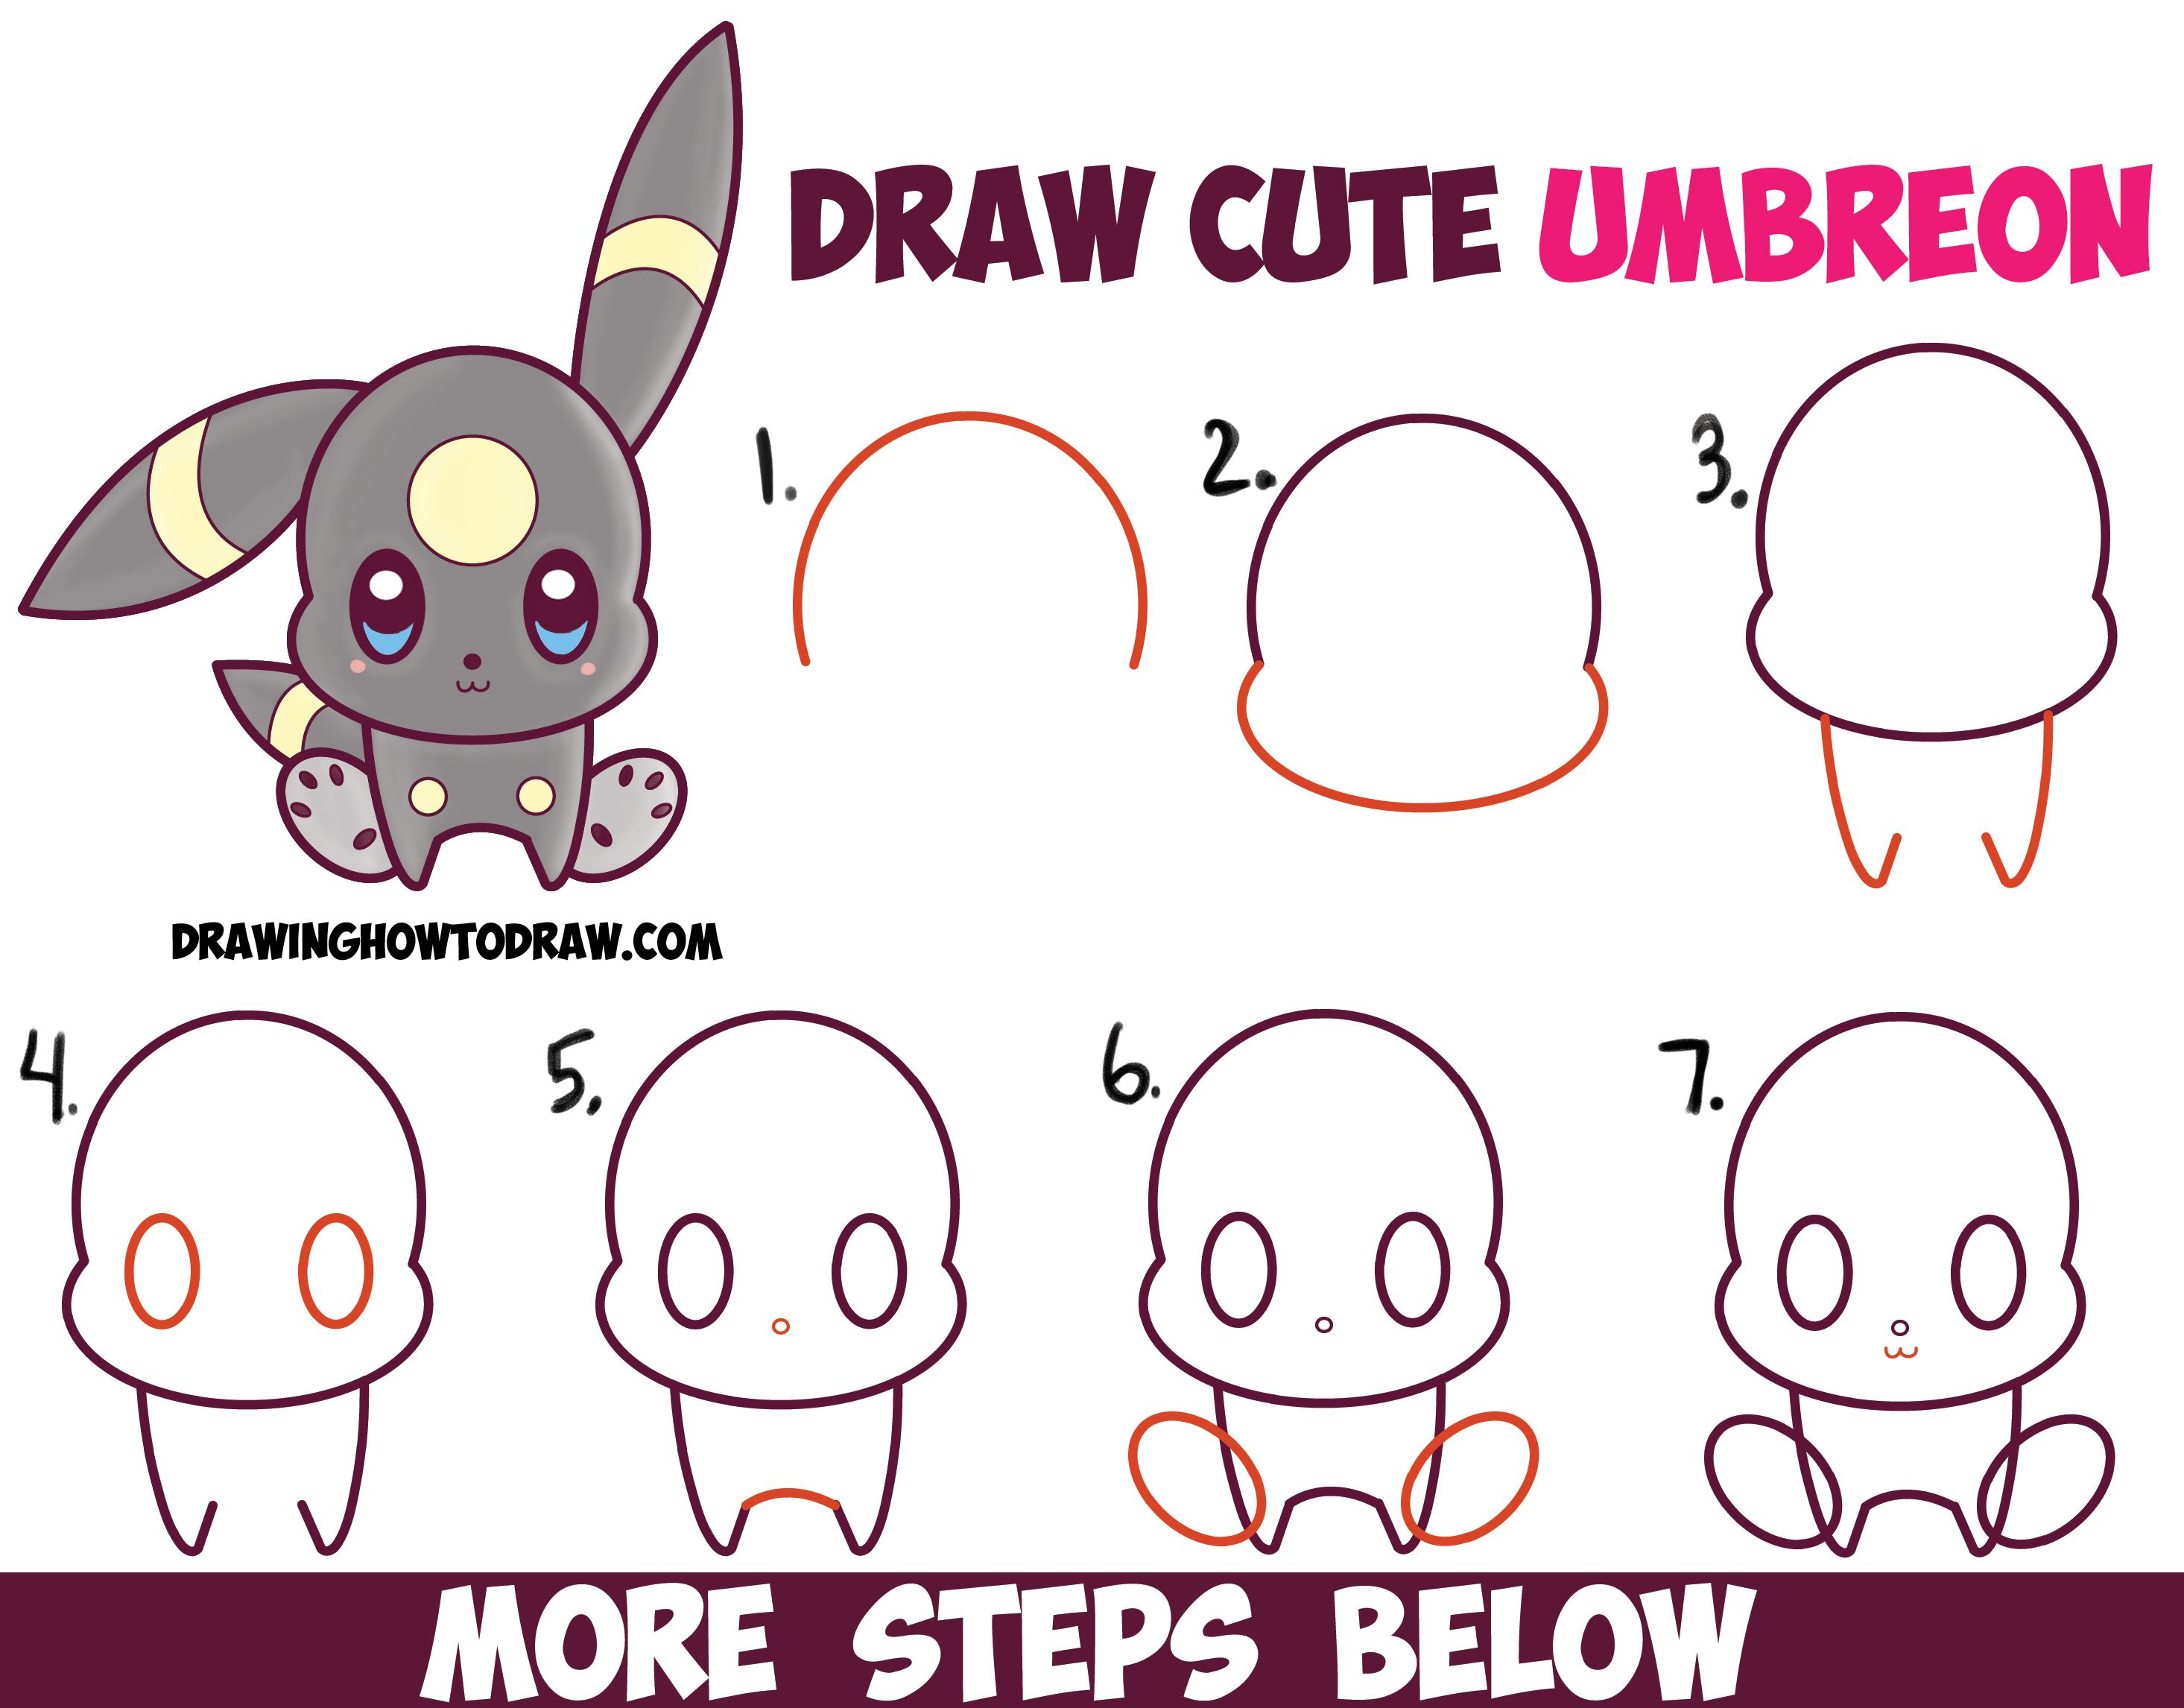 How to draw cute kawaii chibi umbreon from pokemon easy for Drawing ideas for beginners step by step